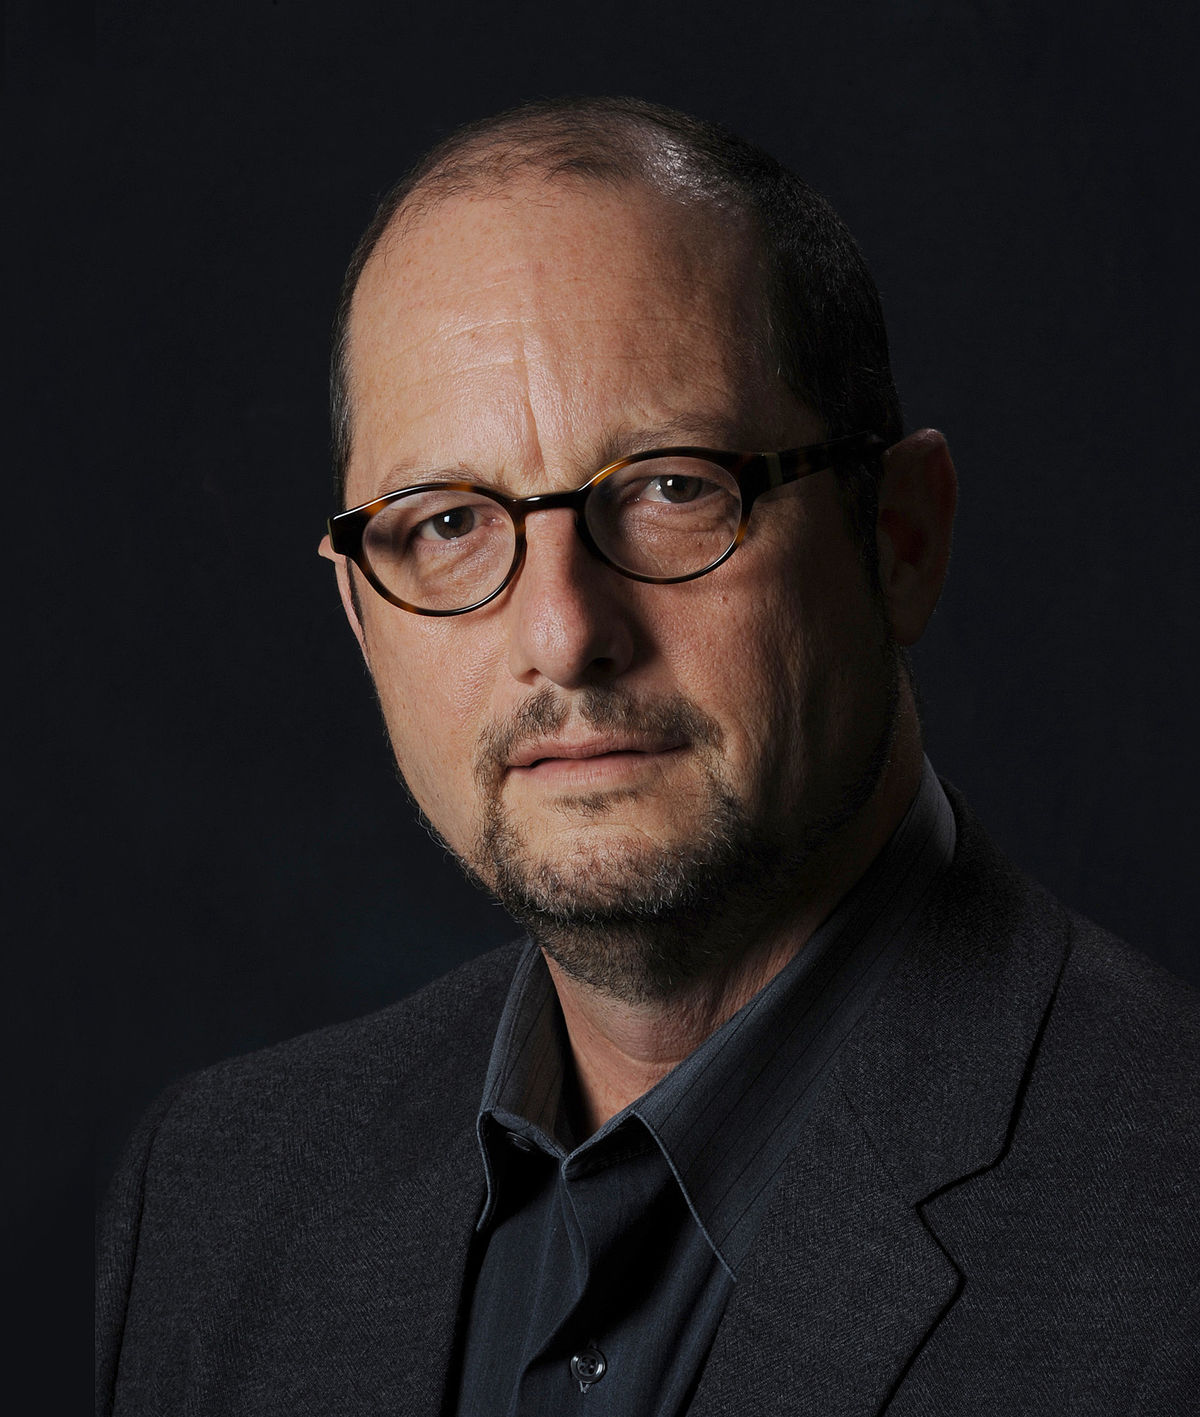 https://upload.wikimedia.org/wikipedia/commons/thumb/b/bb/Bart-d-ehrman-2012-wikipedia.jpg/1200px-Bart-d-ehrman-2012-wikipedia.jpg